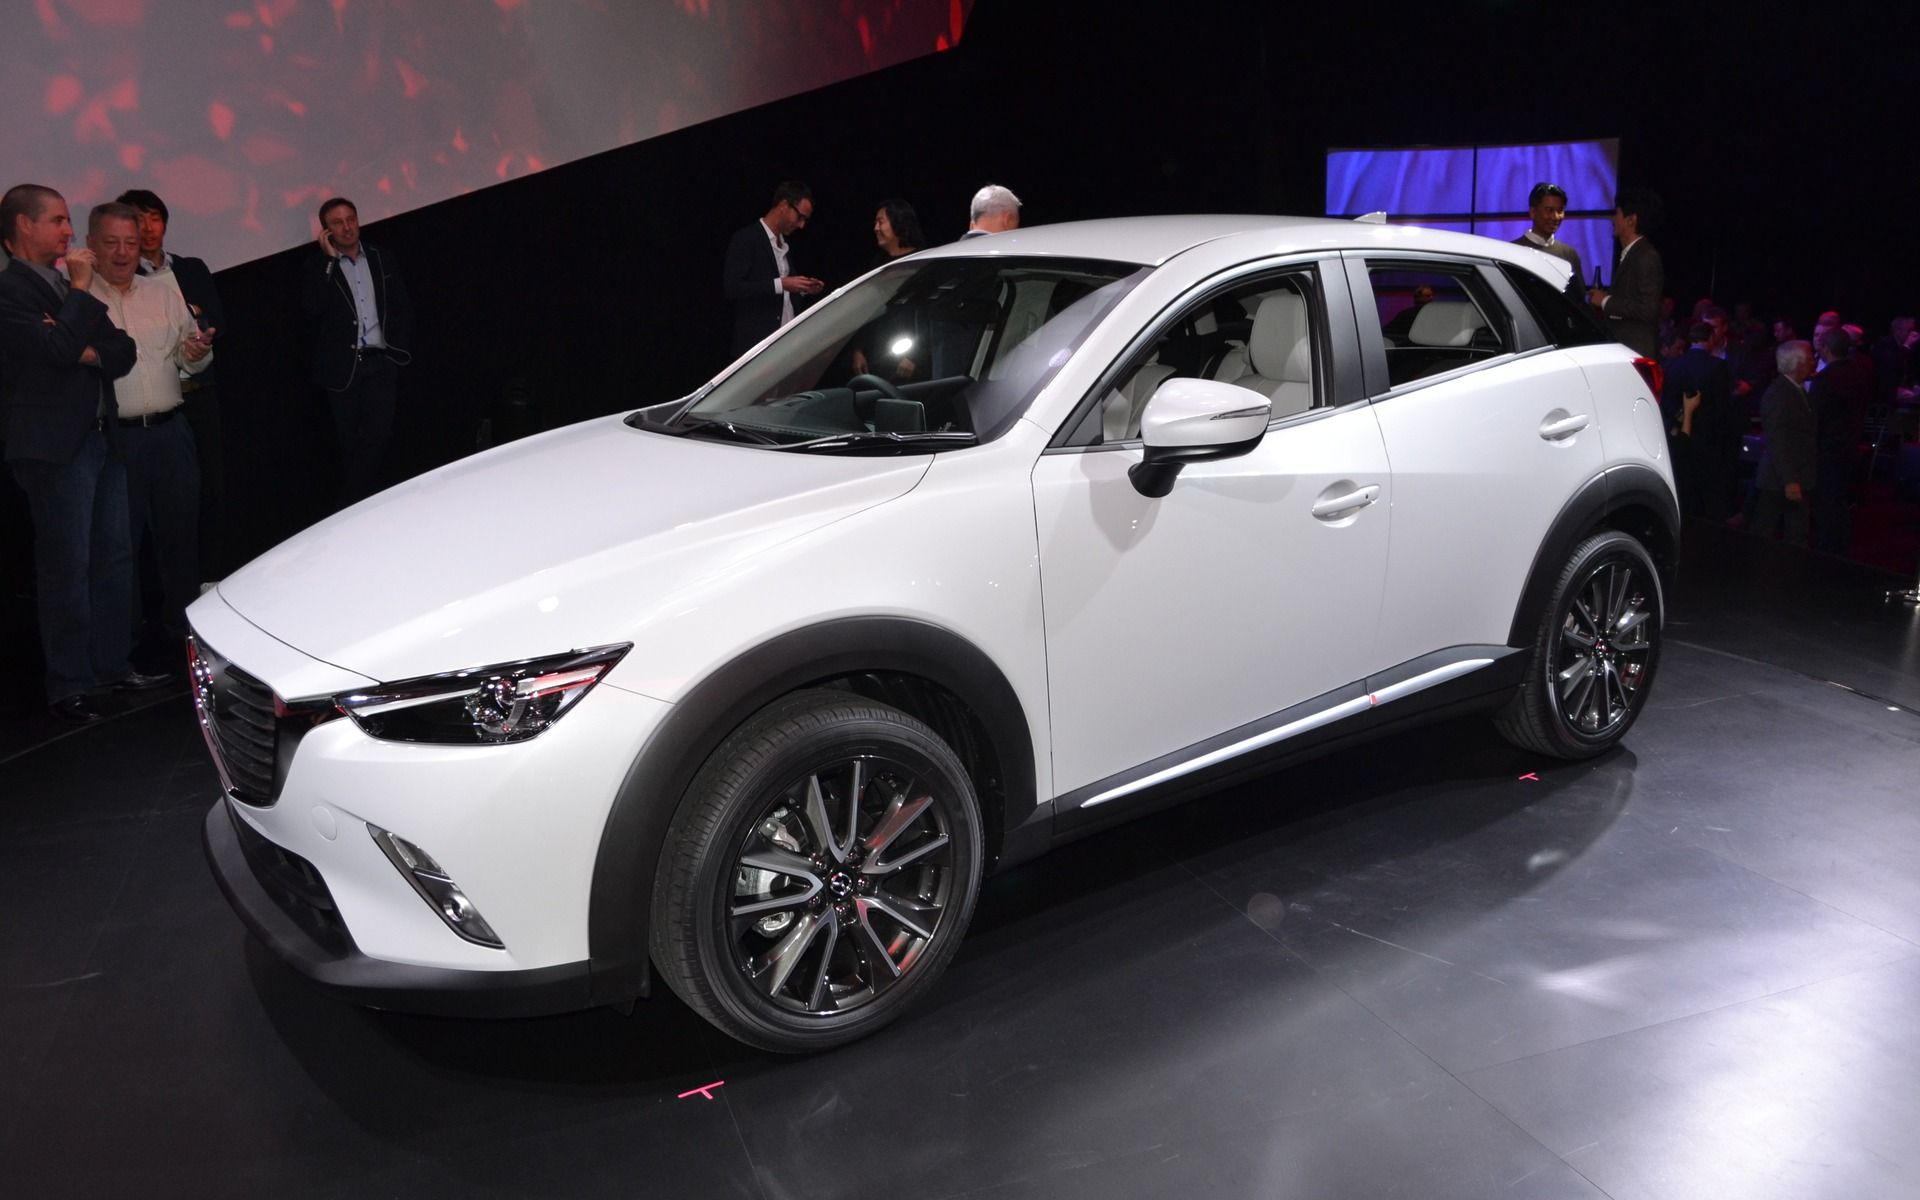 2016 Mazda Cx 3 Picture Gallery Photo 6 23 The Car